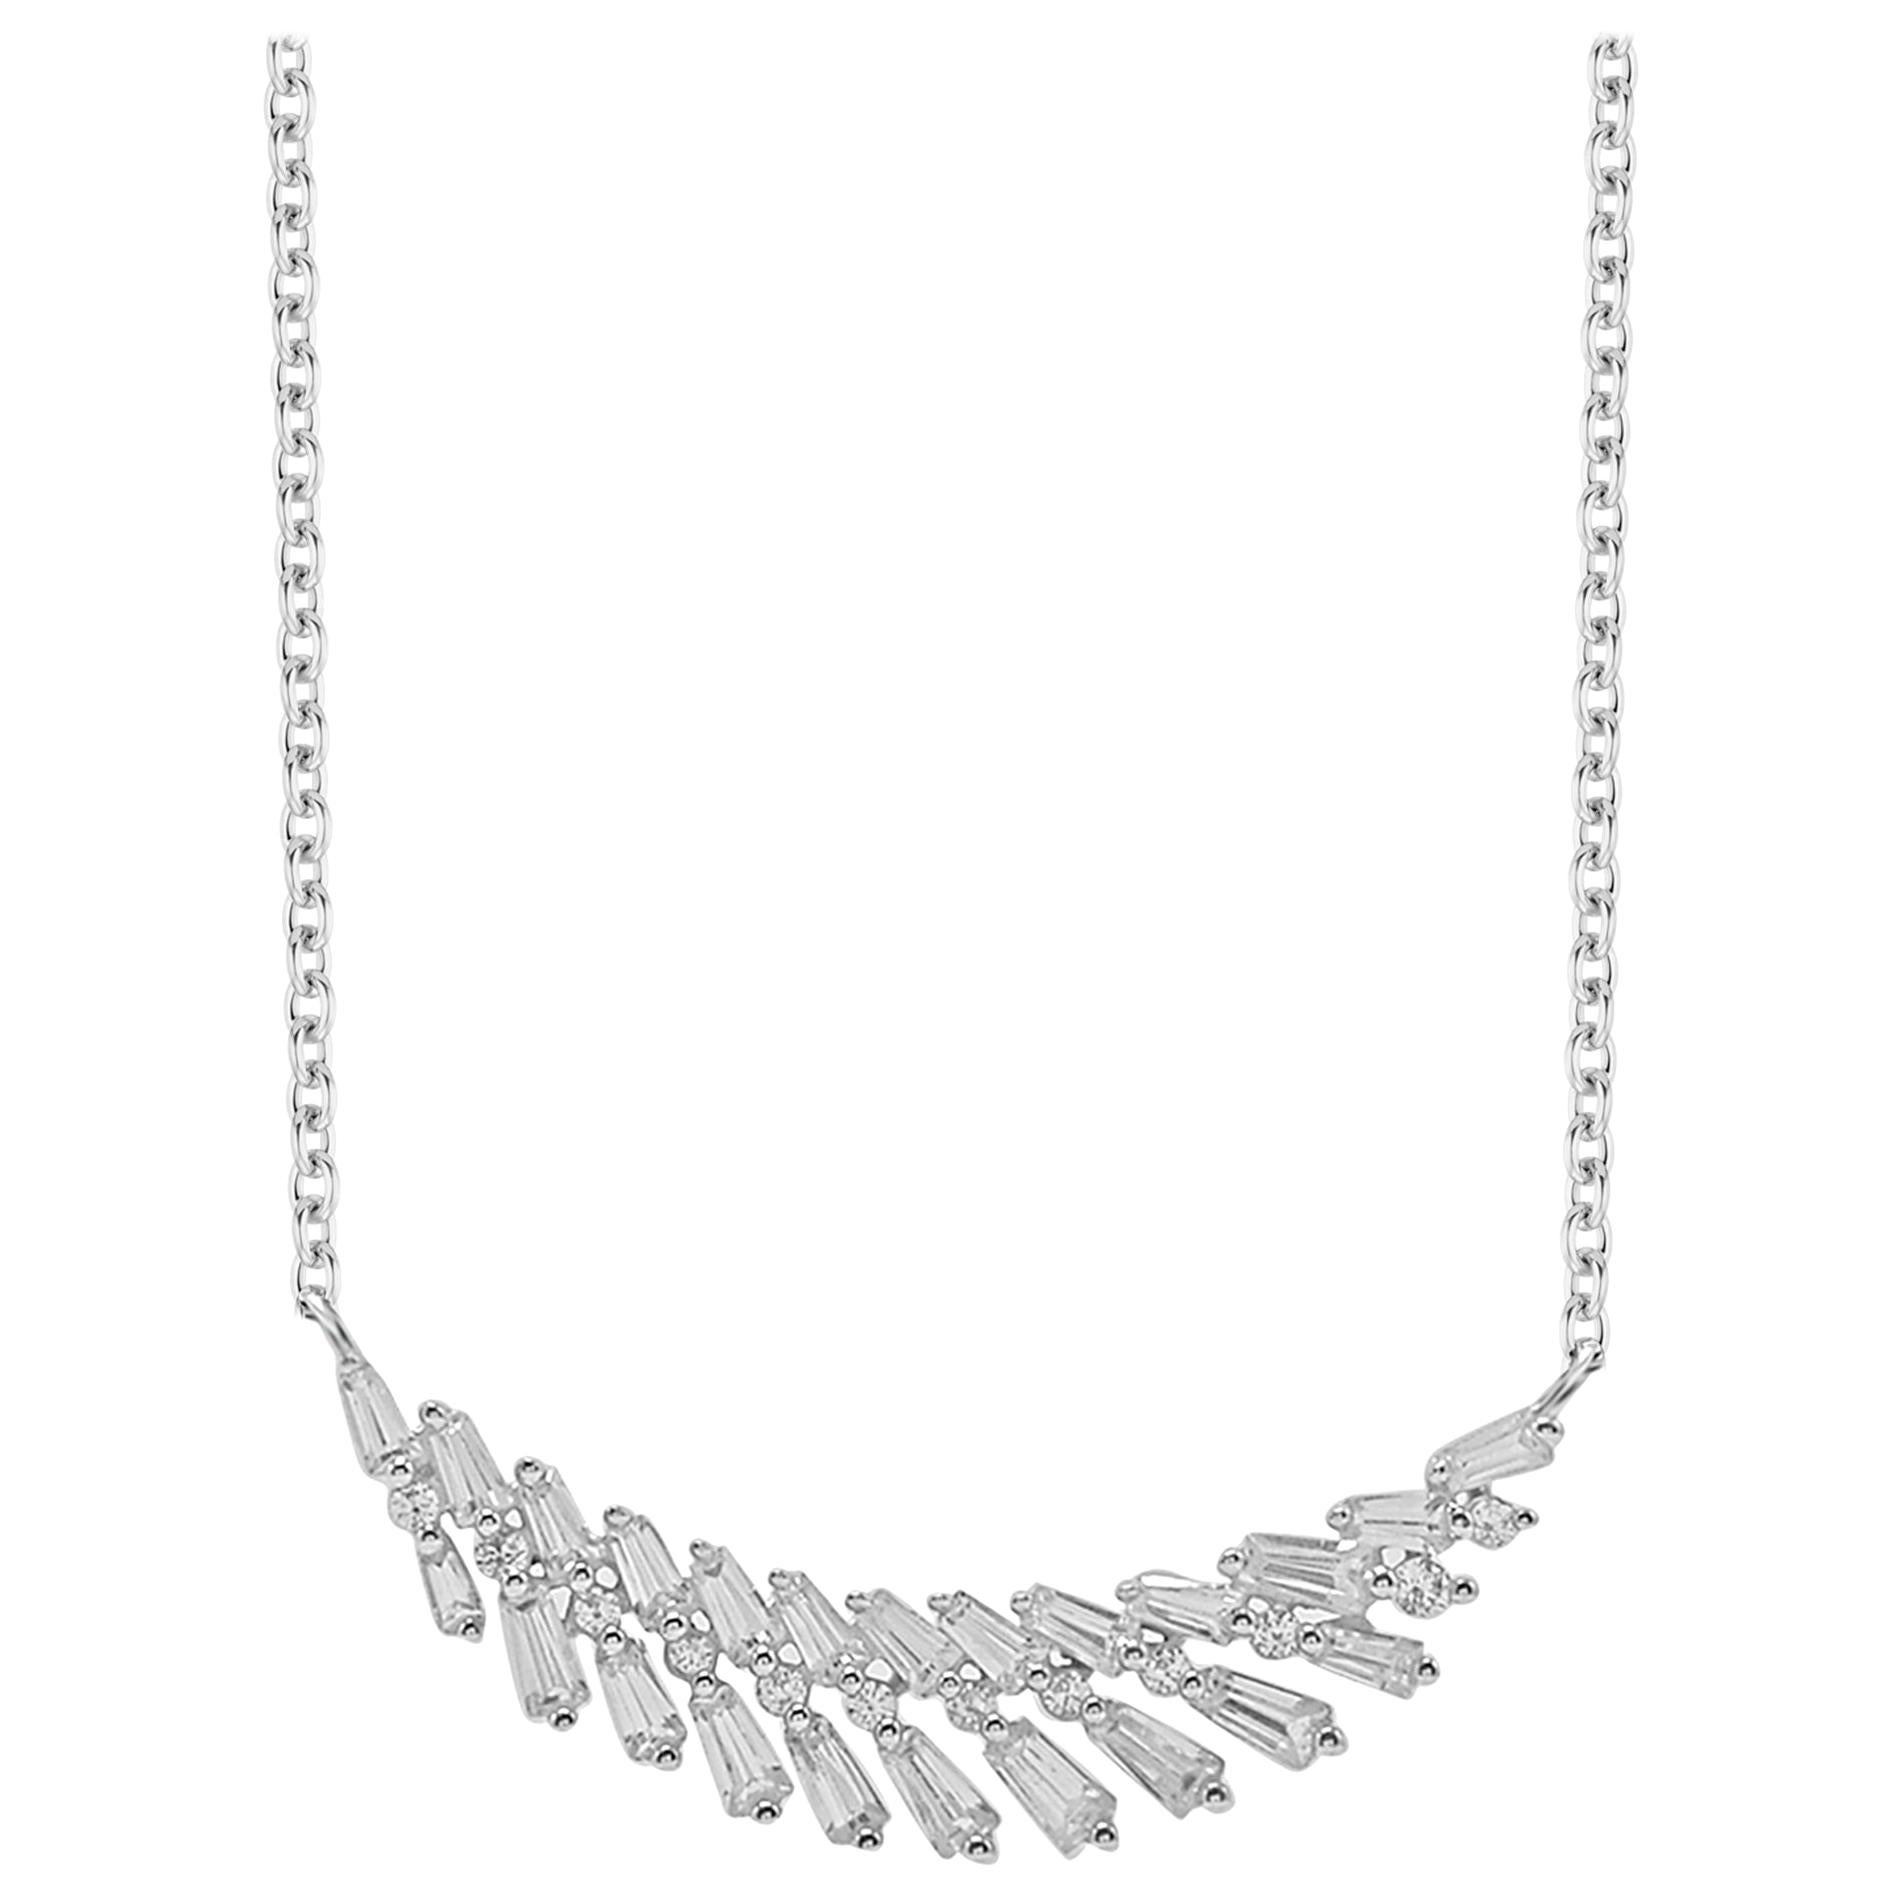 TJD 0.50 Carat Alternating Round and Baguette Diamond 14 K White Gold Necklace